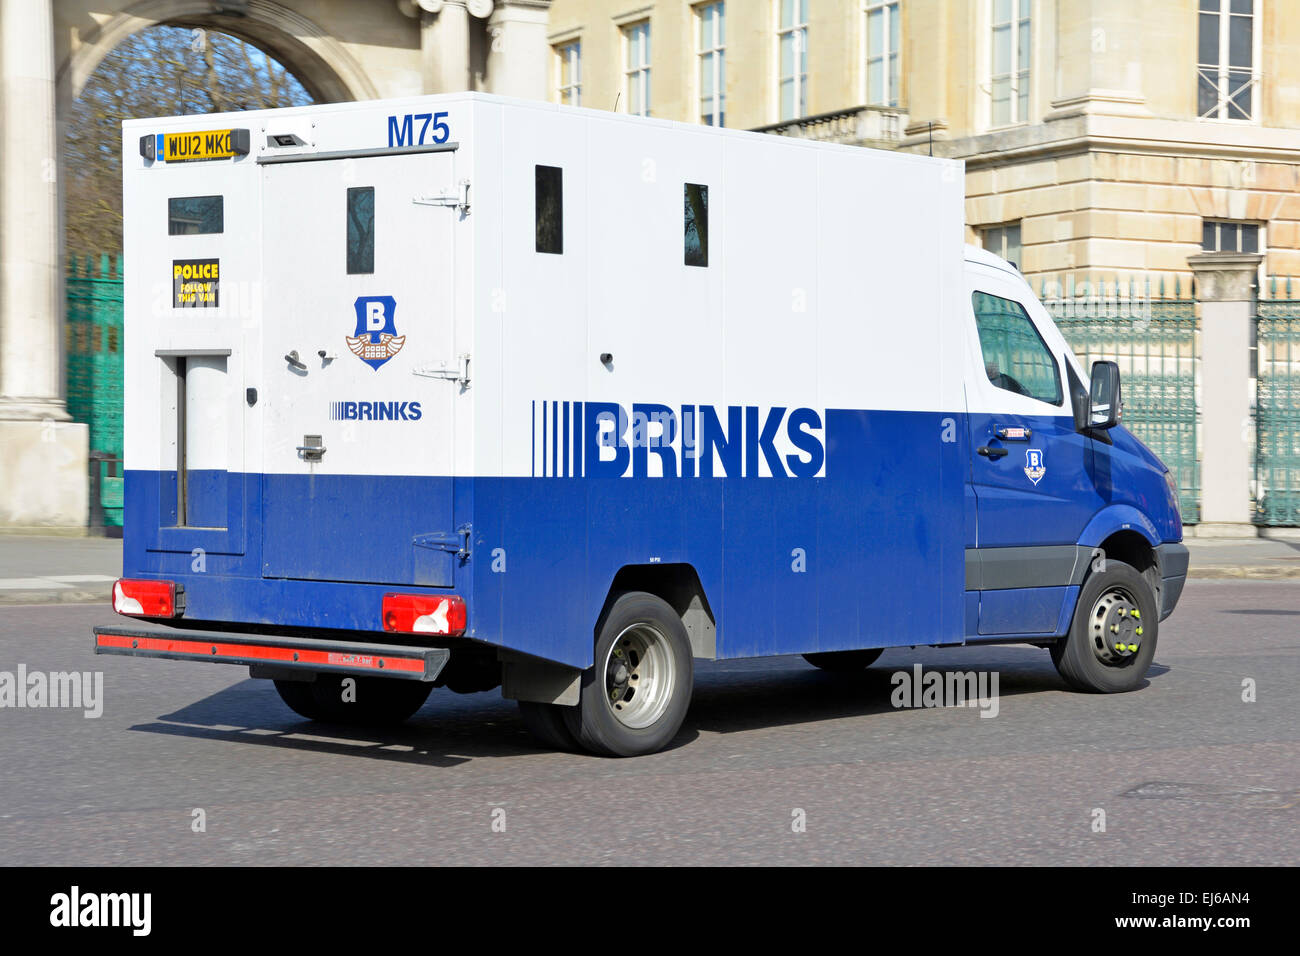 Brinks high security armored van used for moving and delivering money and valuable goods by road